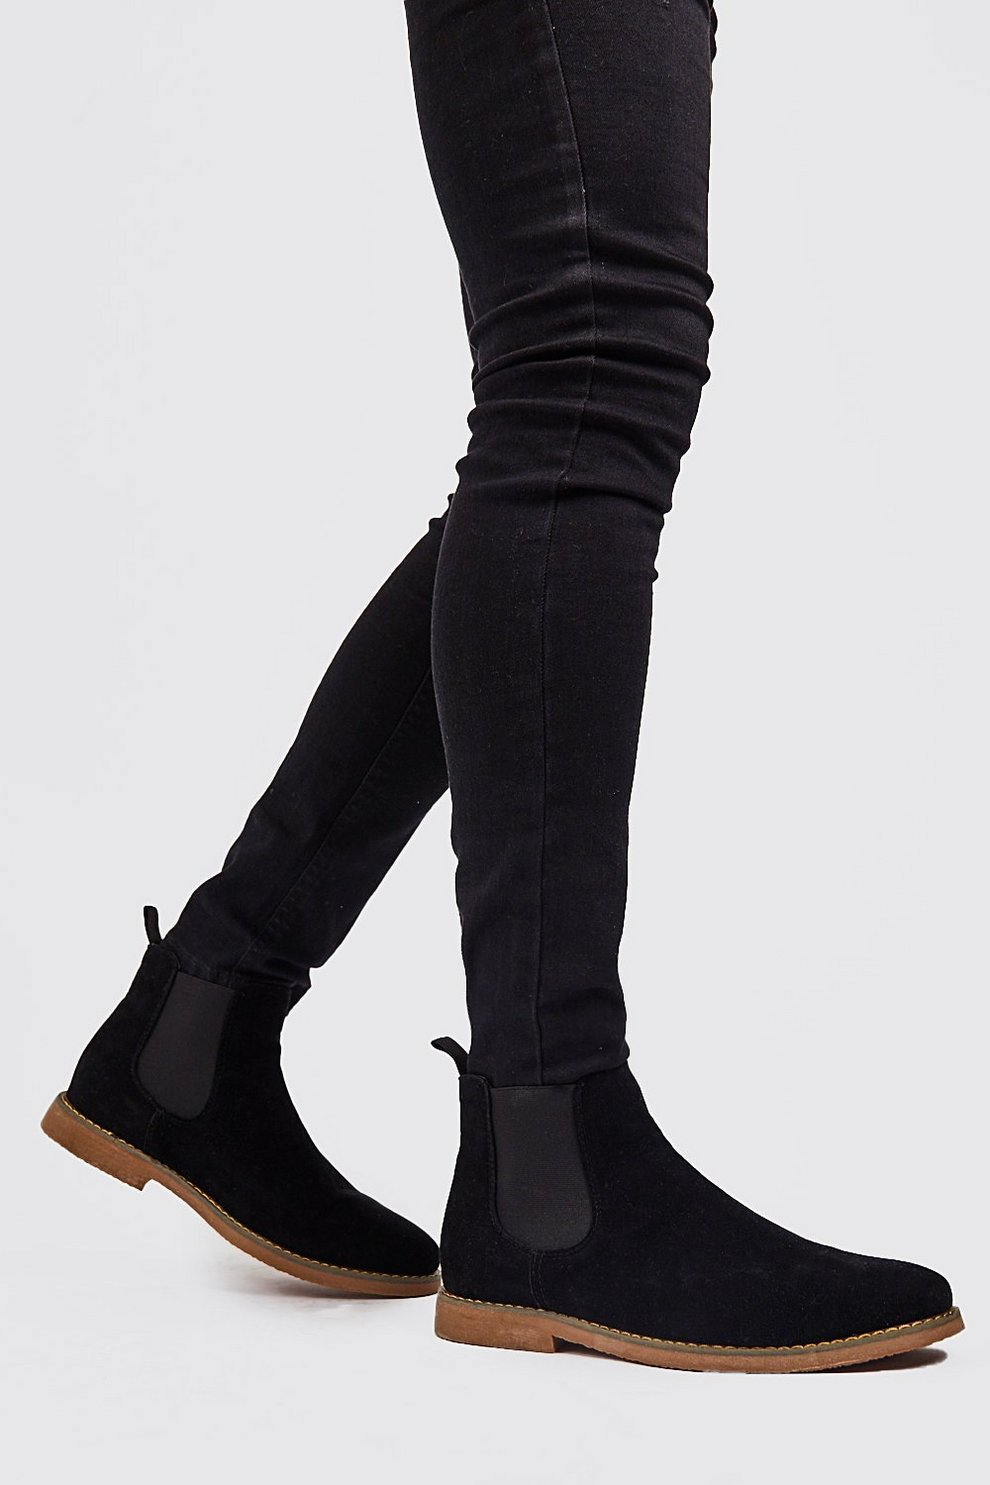 60% discount On Clearance attractive price Faux Suede Chelsea Boots